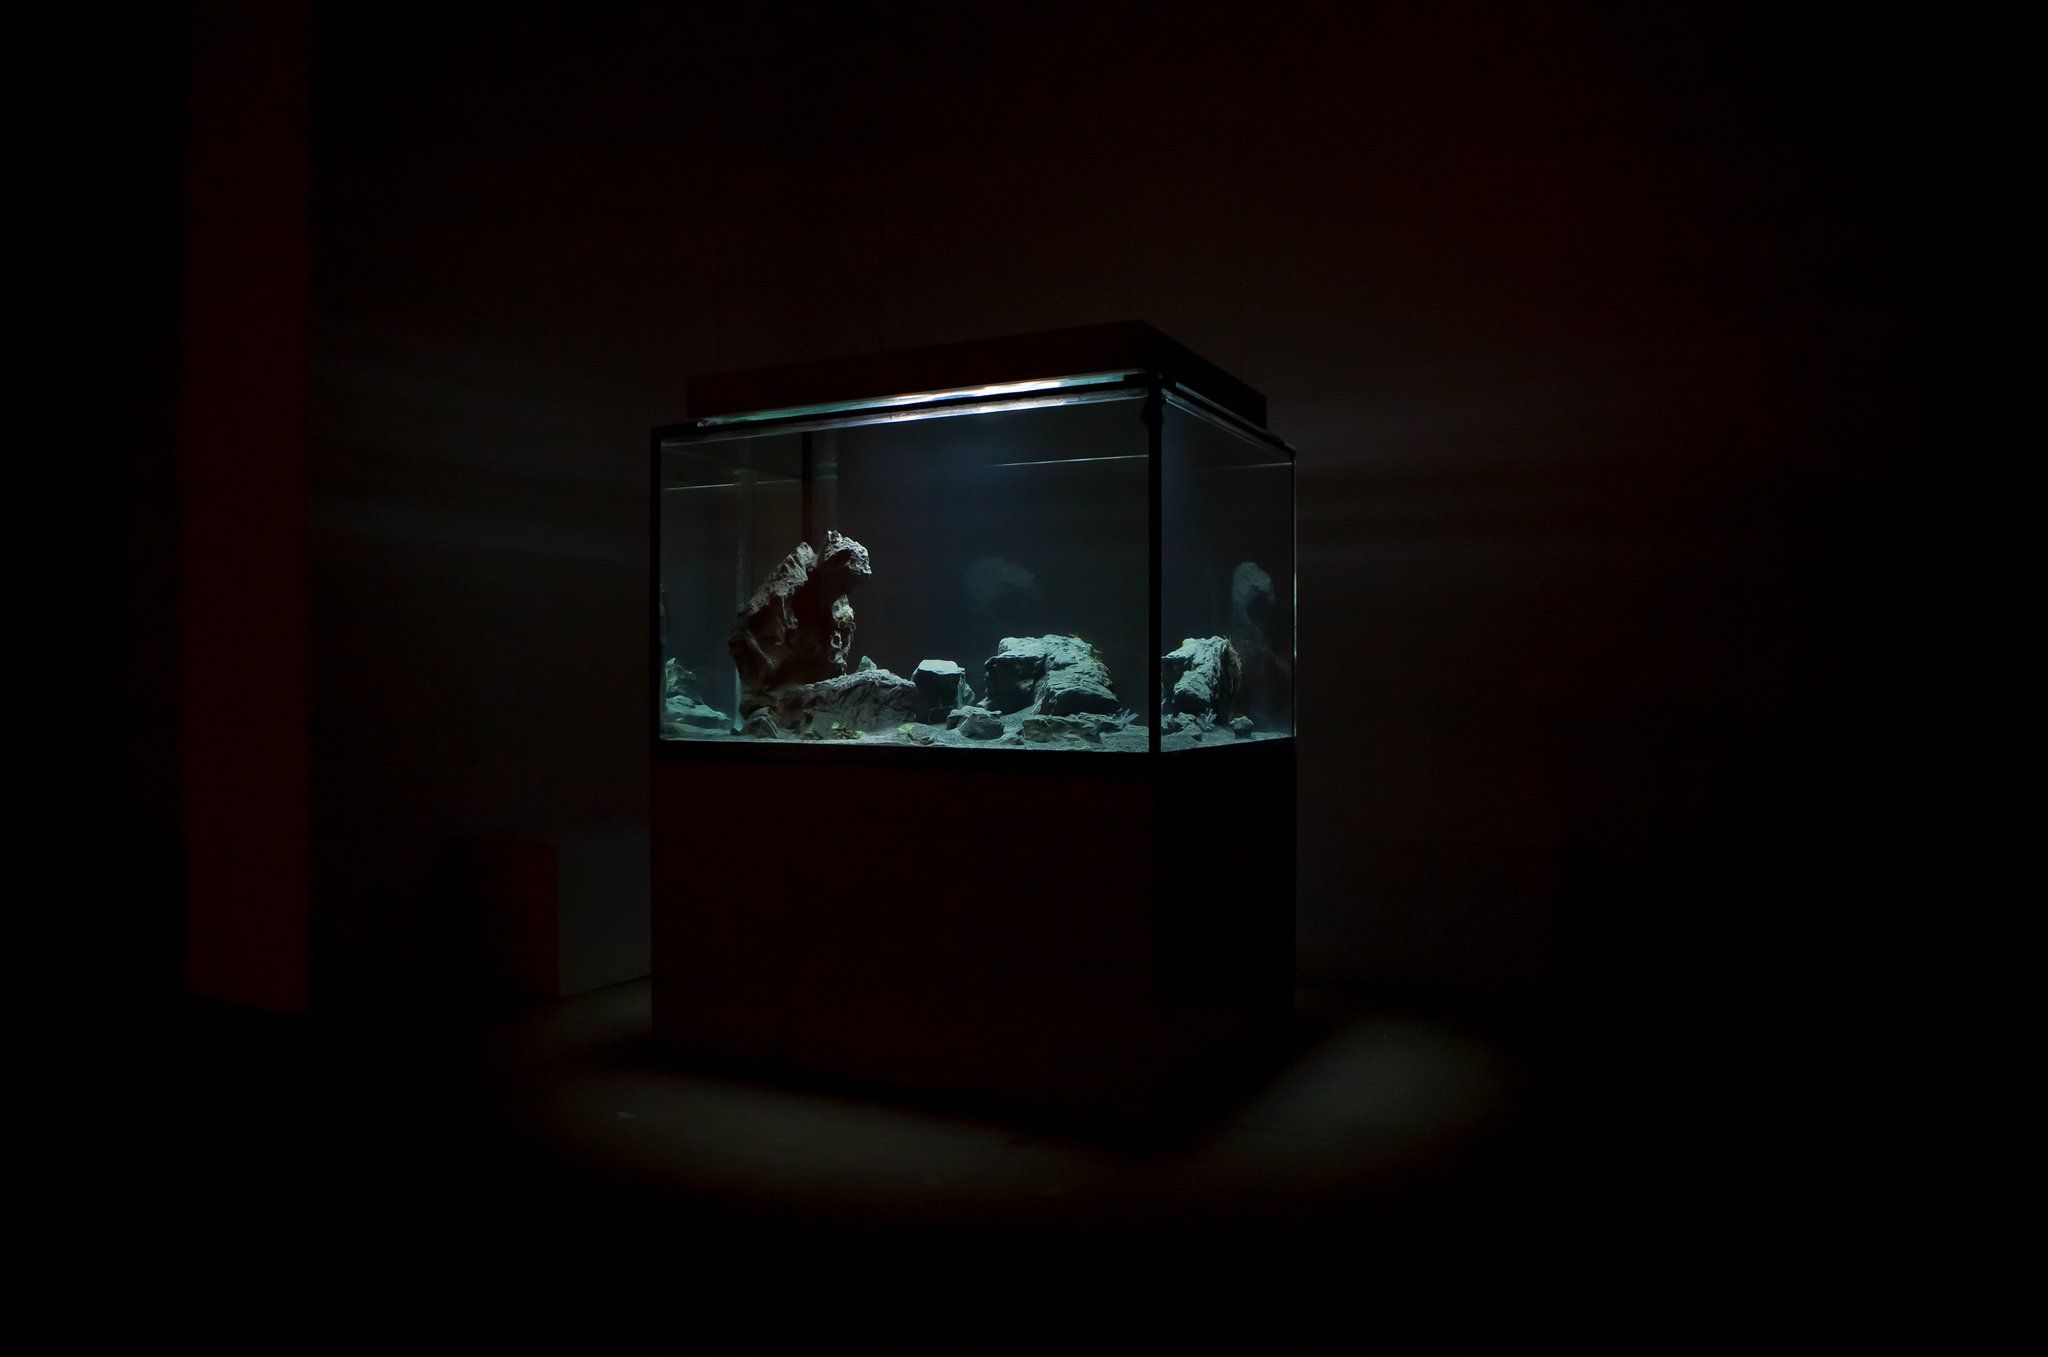 Pierre Huyghe / Okeanos Aquascaping At Marian Goodman Gallery